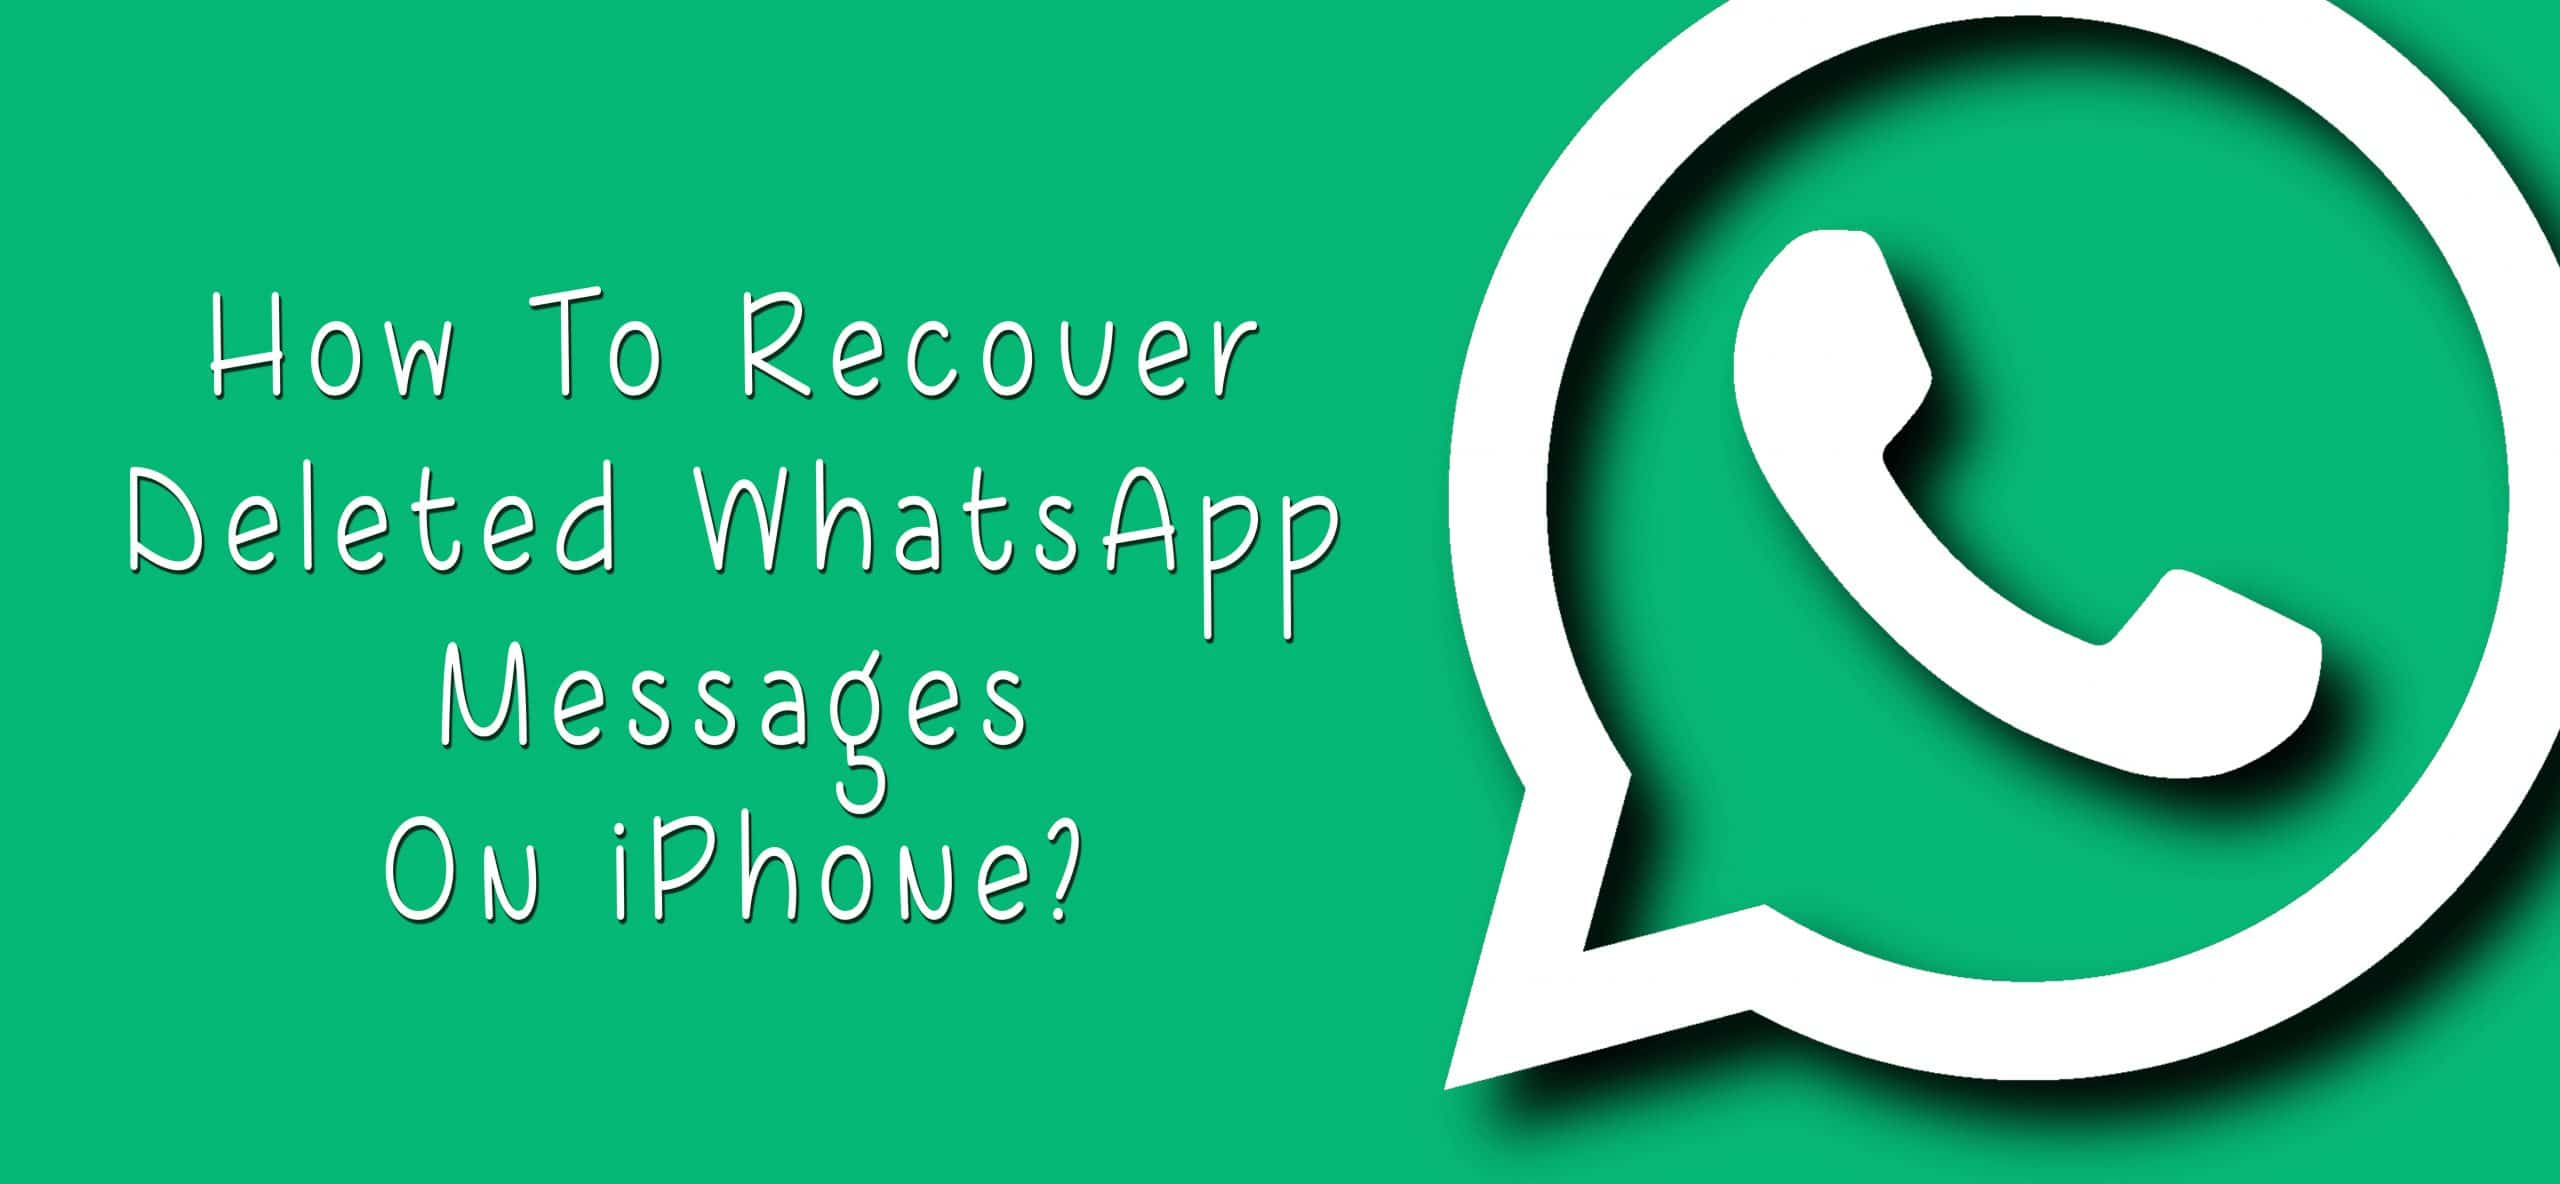 restore-deleted-whatsapp-messages-on-iphone